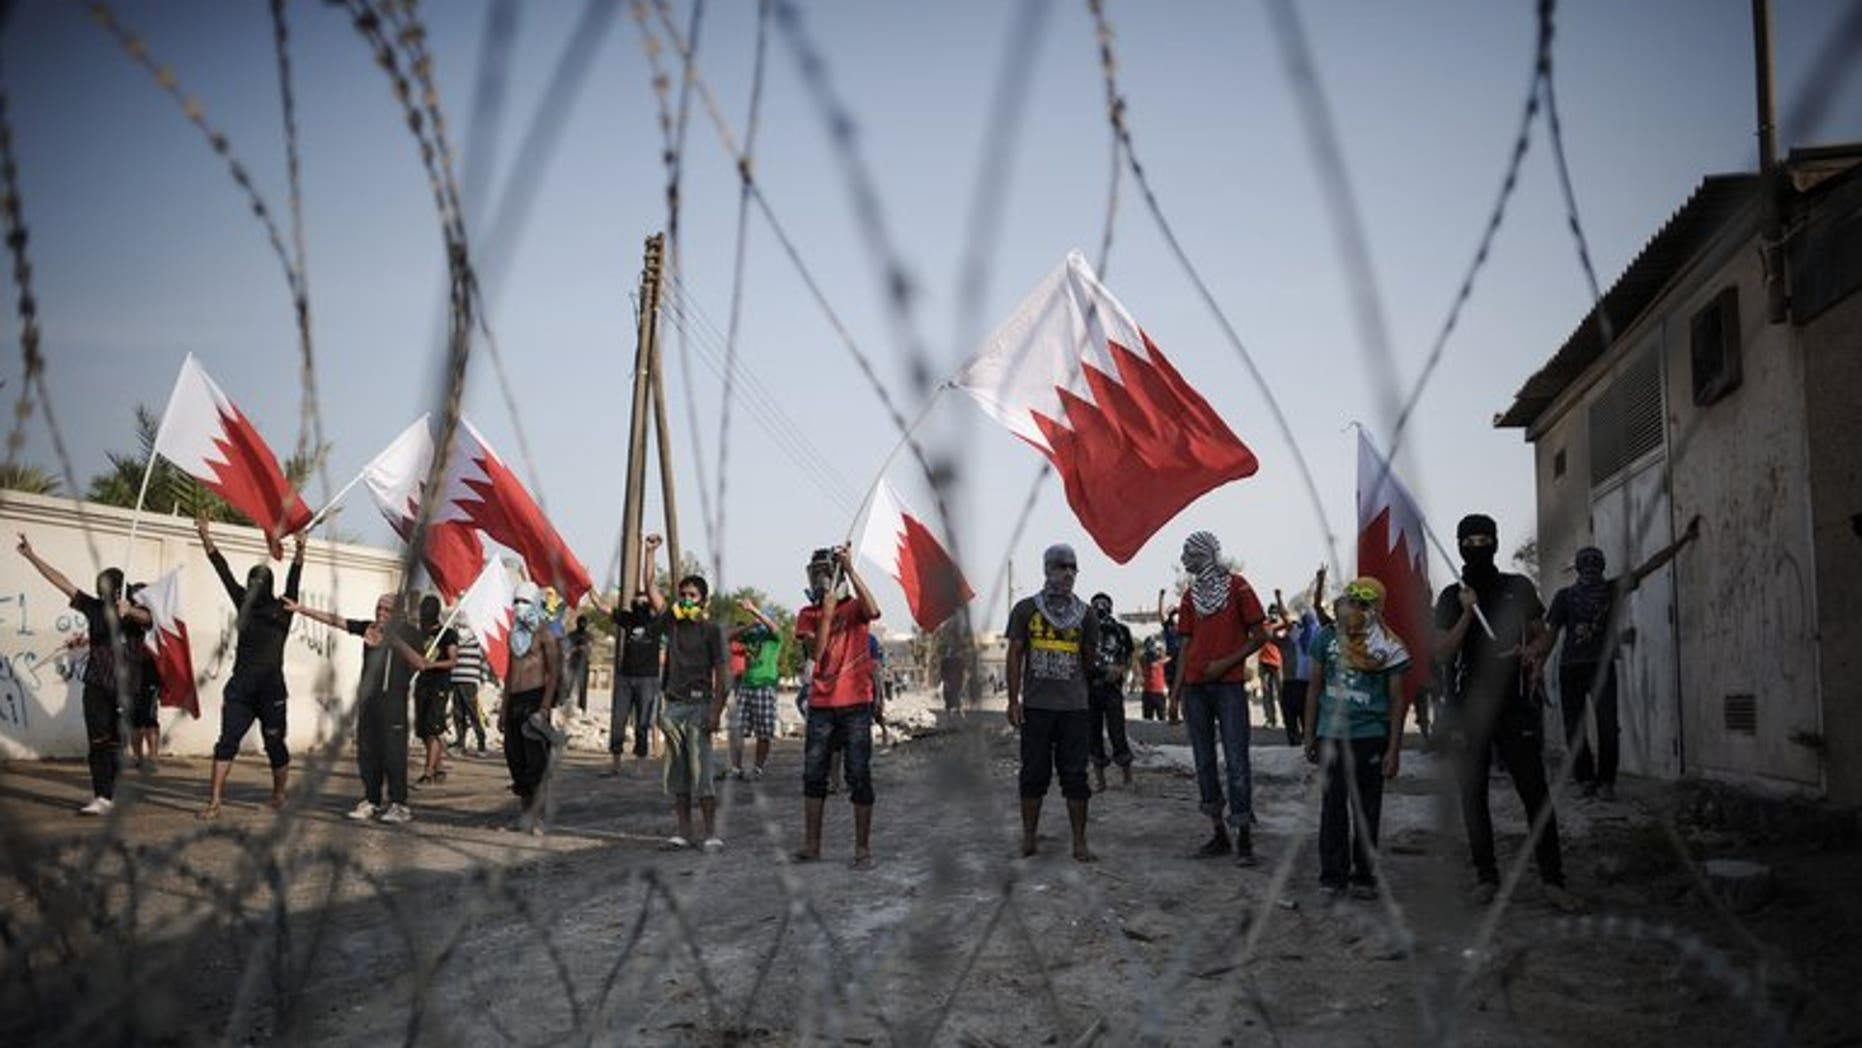 Bahraini protestors wave their national flag as they stand behind barbed wire placed by riot police during demonstration against the ruling regime in the village of Shakhora, west of Manama, on August 14, 2013. Five Bahraini police were wounded late on Saturday, as security forces clashed with opposition protesters in a Shiite village north of the capital, police said.